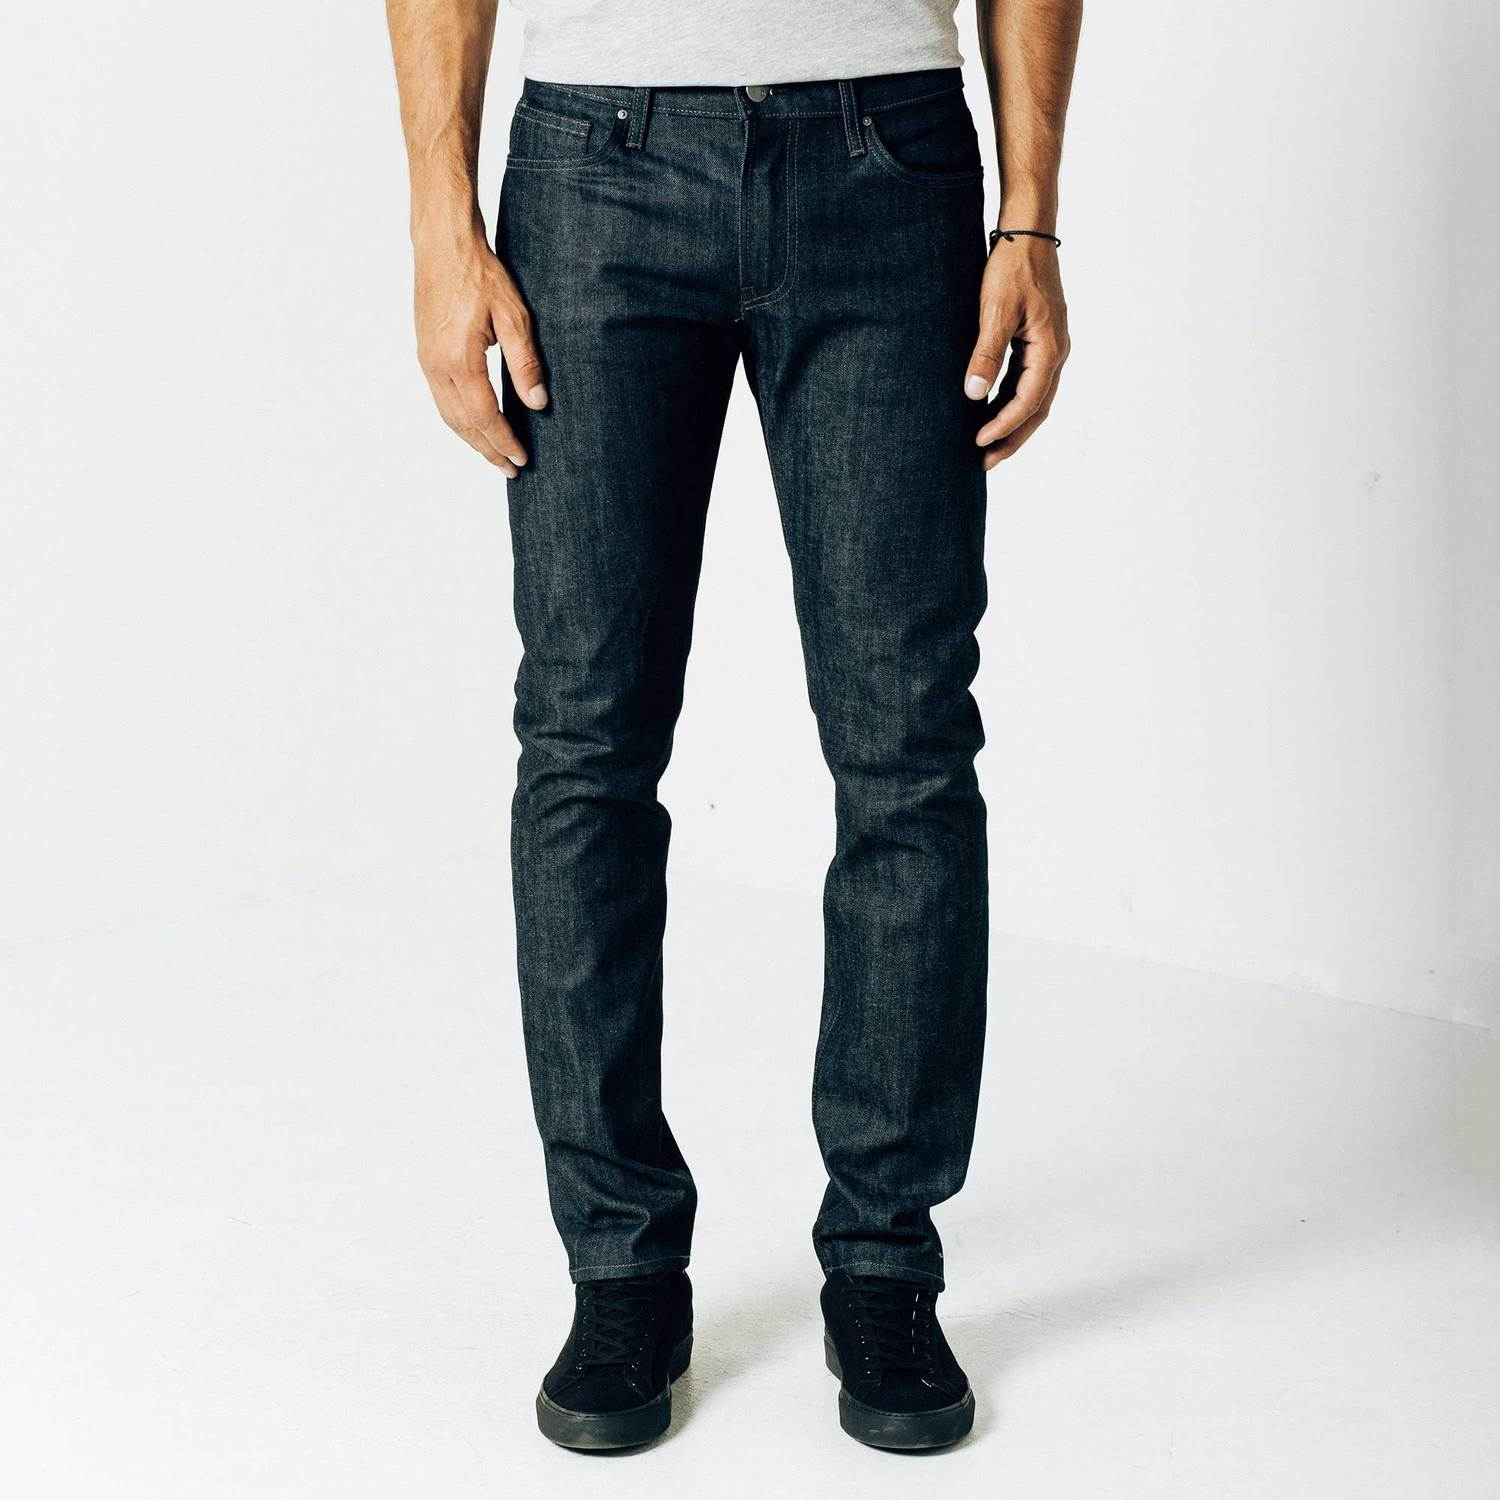 Skinny-Slim 11.75oz Raw Denim Jeans in 24-dip Indigo - Grey